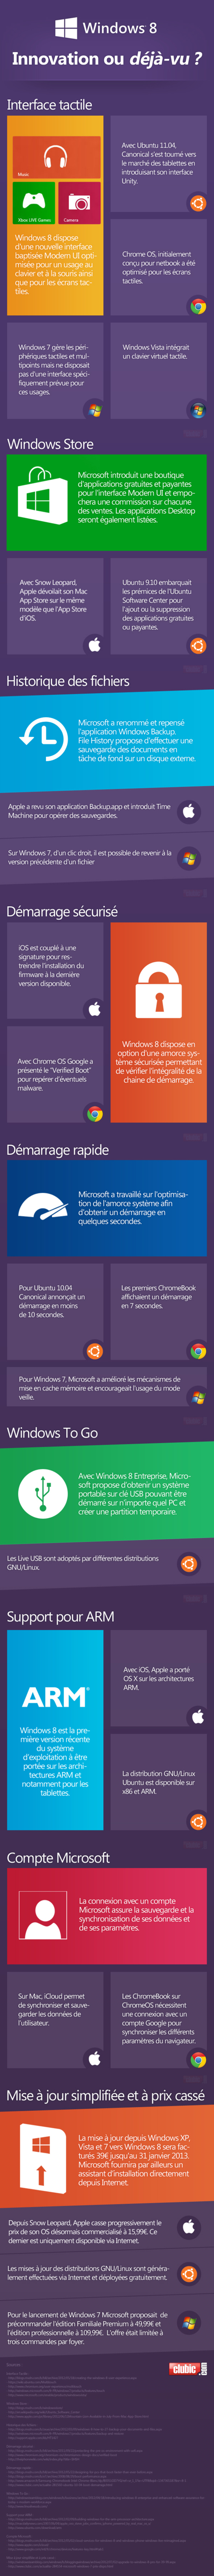 Les innovations de Windows 8 face à la concurrence en 1 image